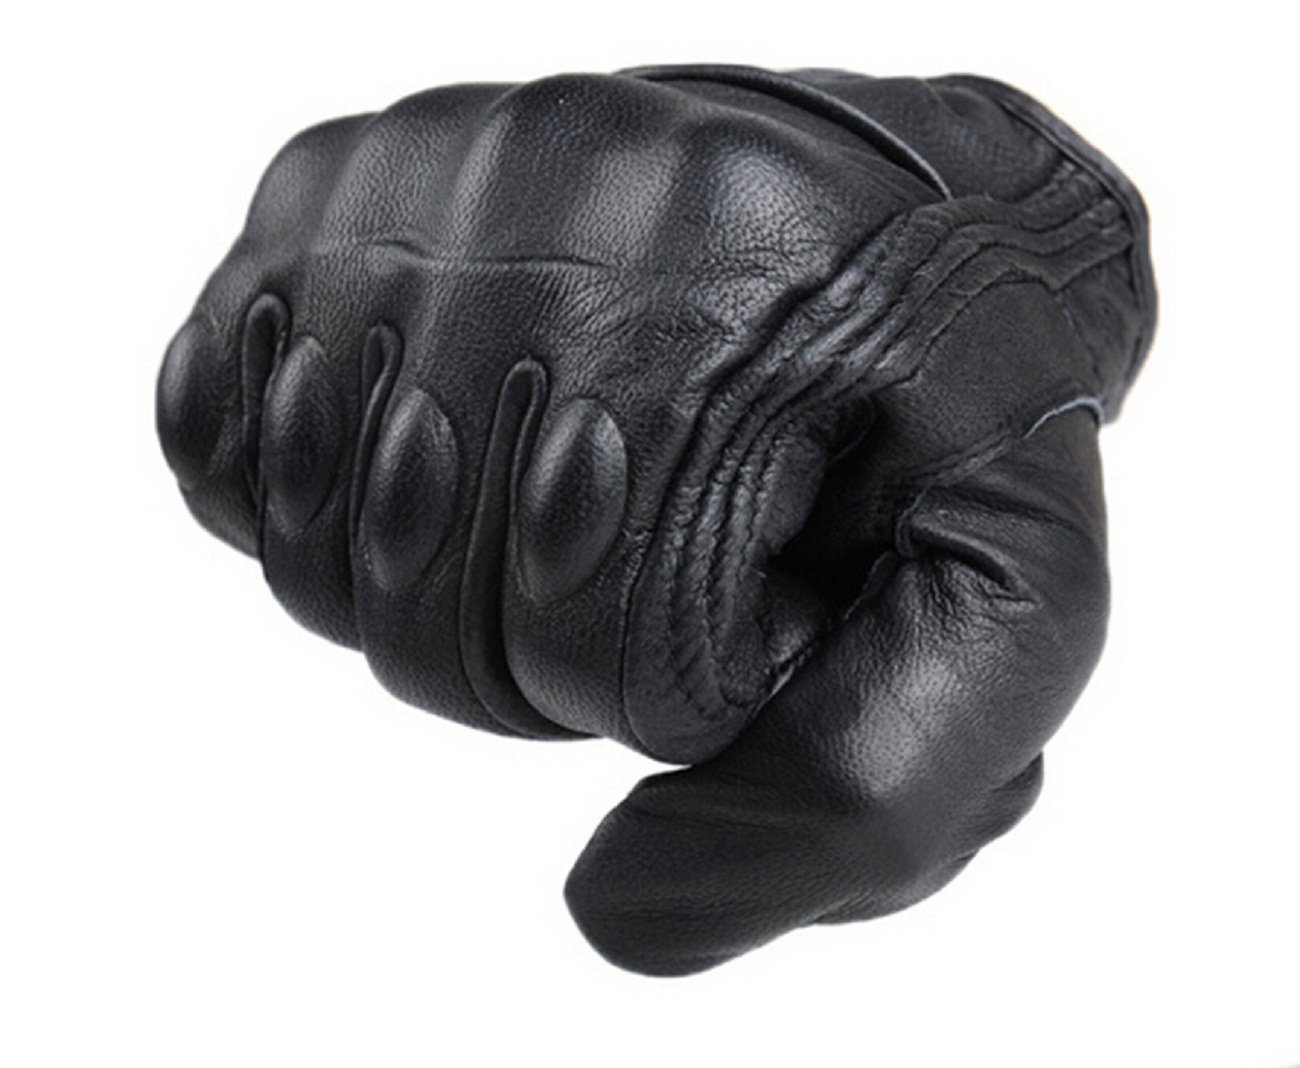 FXC Full Finger Motorcycle Leather Gloves Men's Premium Protective Motorbike Gloves (L, Solid) by FXC (Image #7)